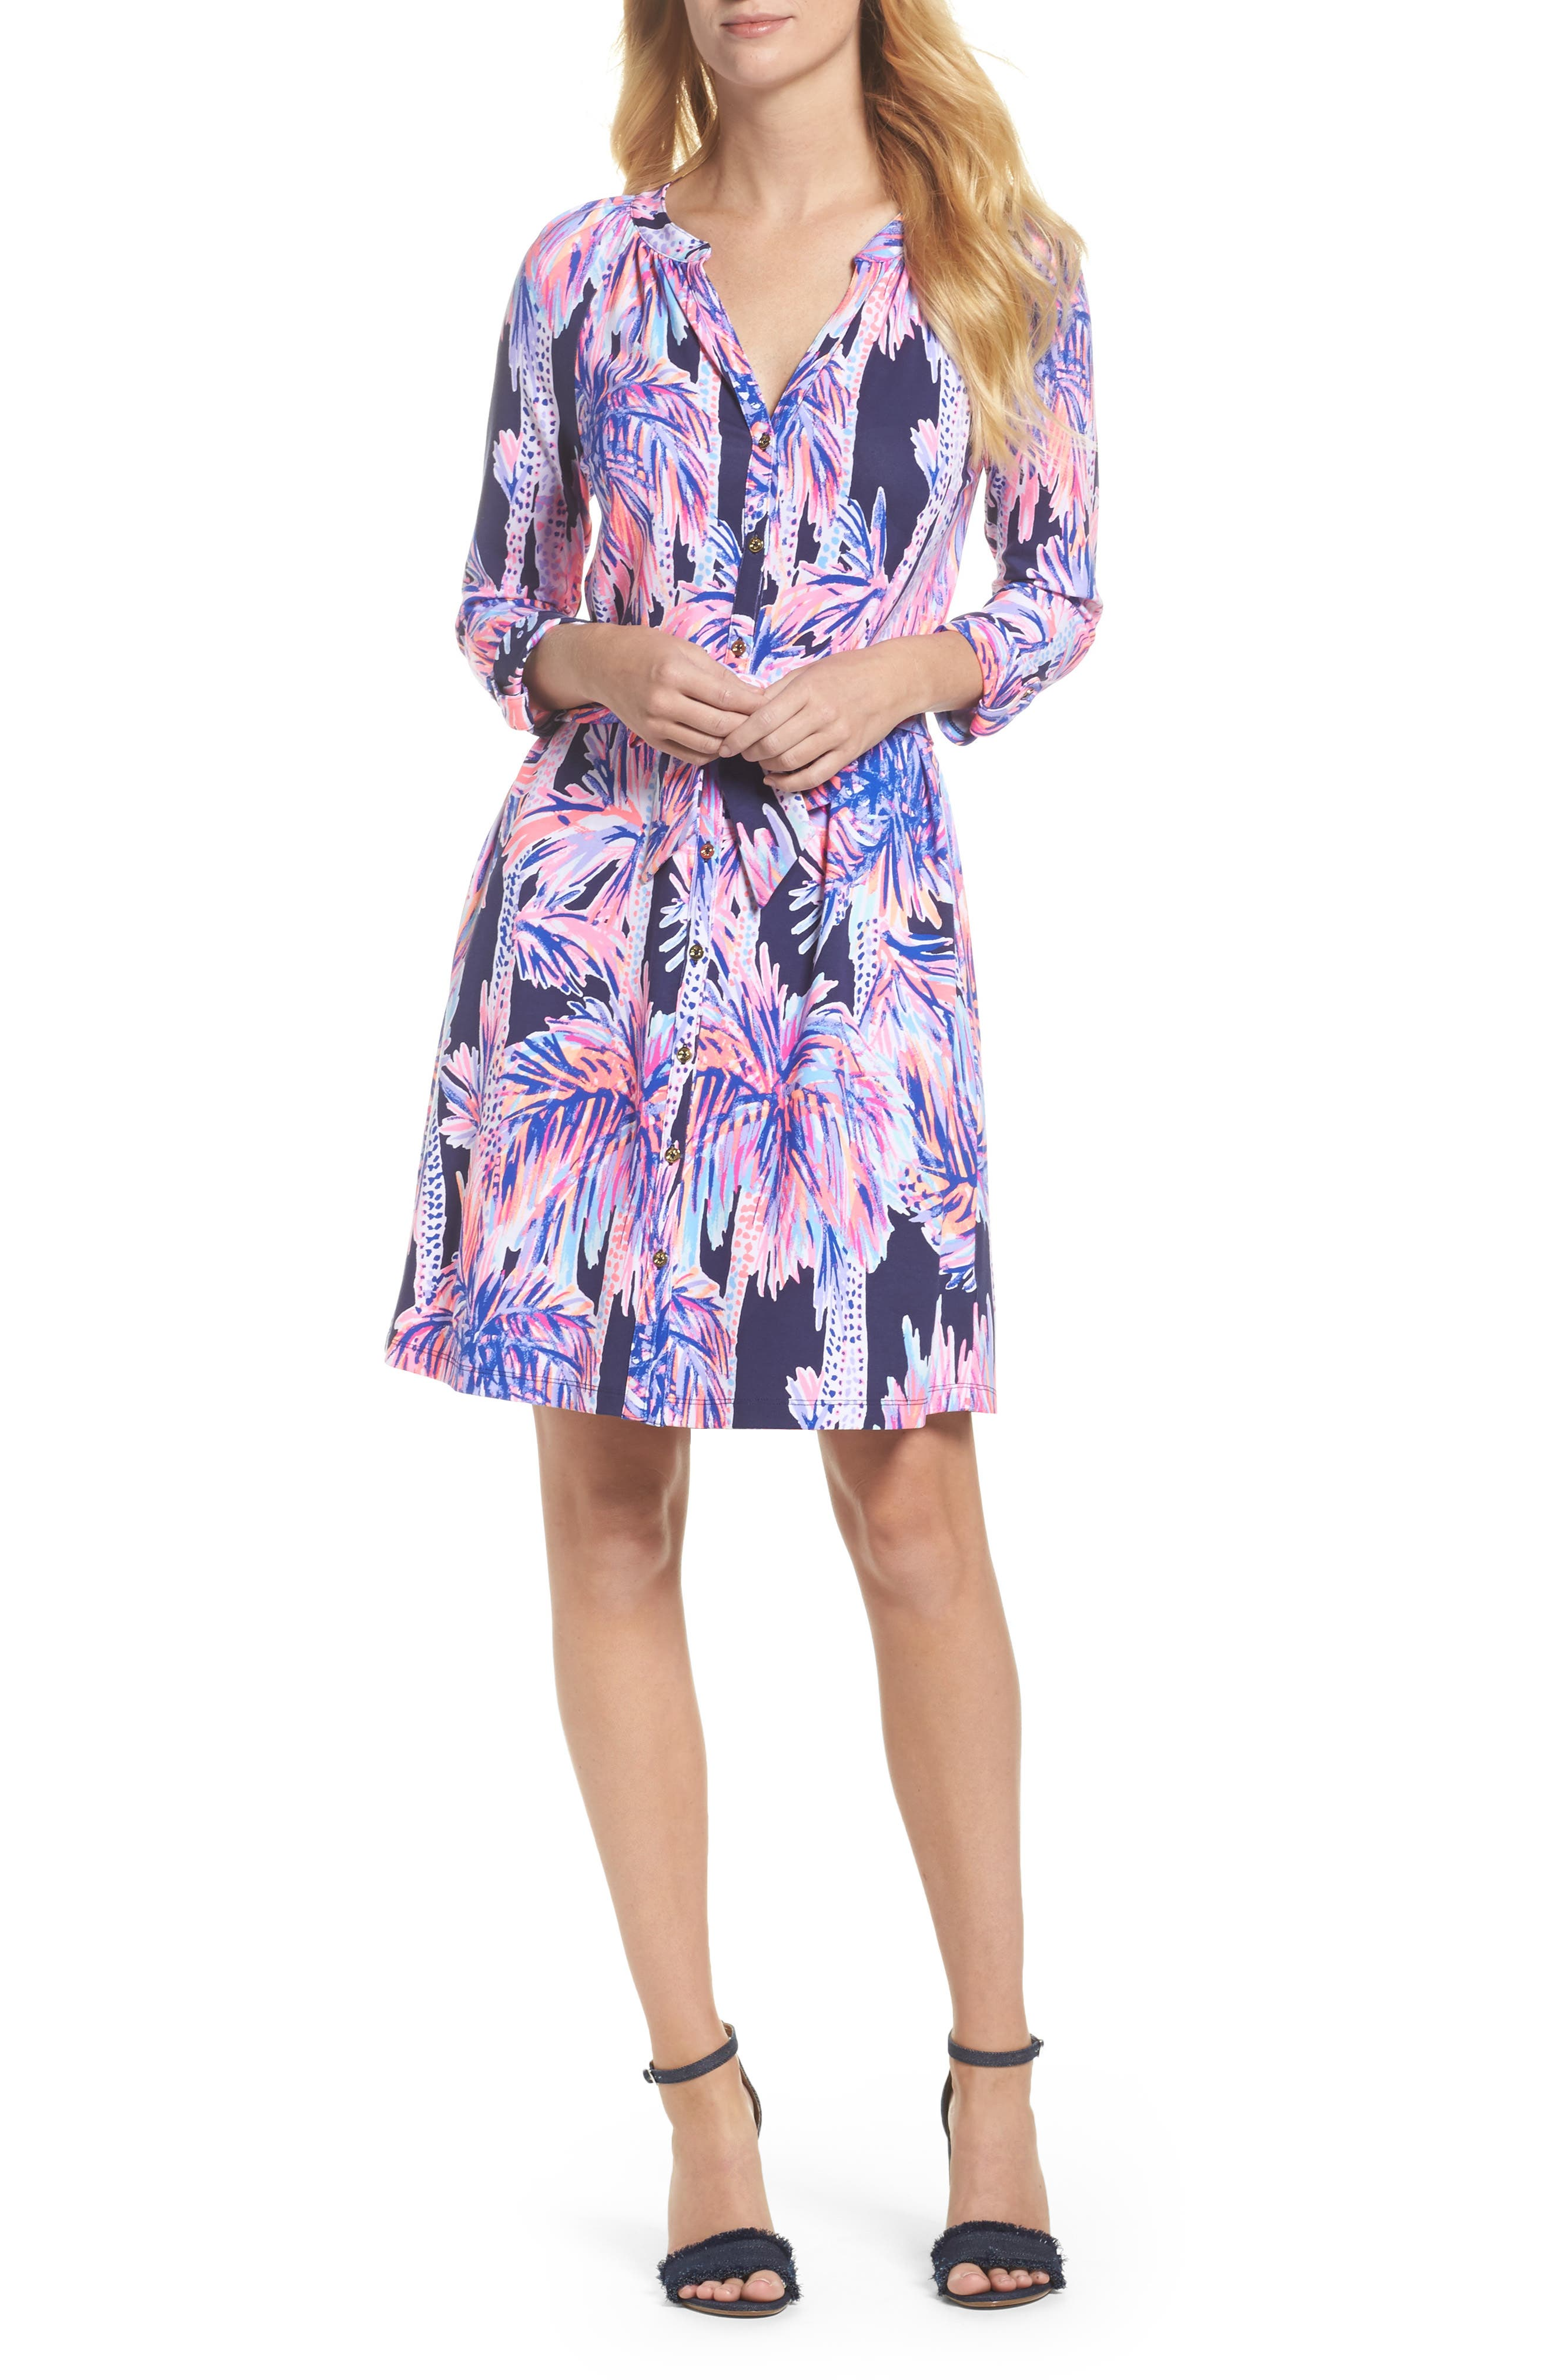 Bailor Shirtdress,                             Main thumbnail 1, color,                             410